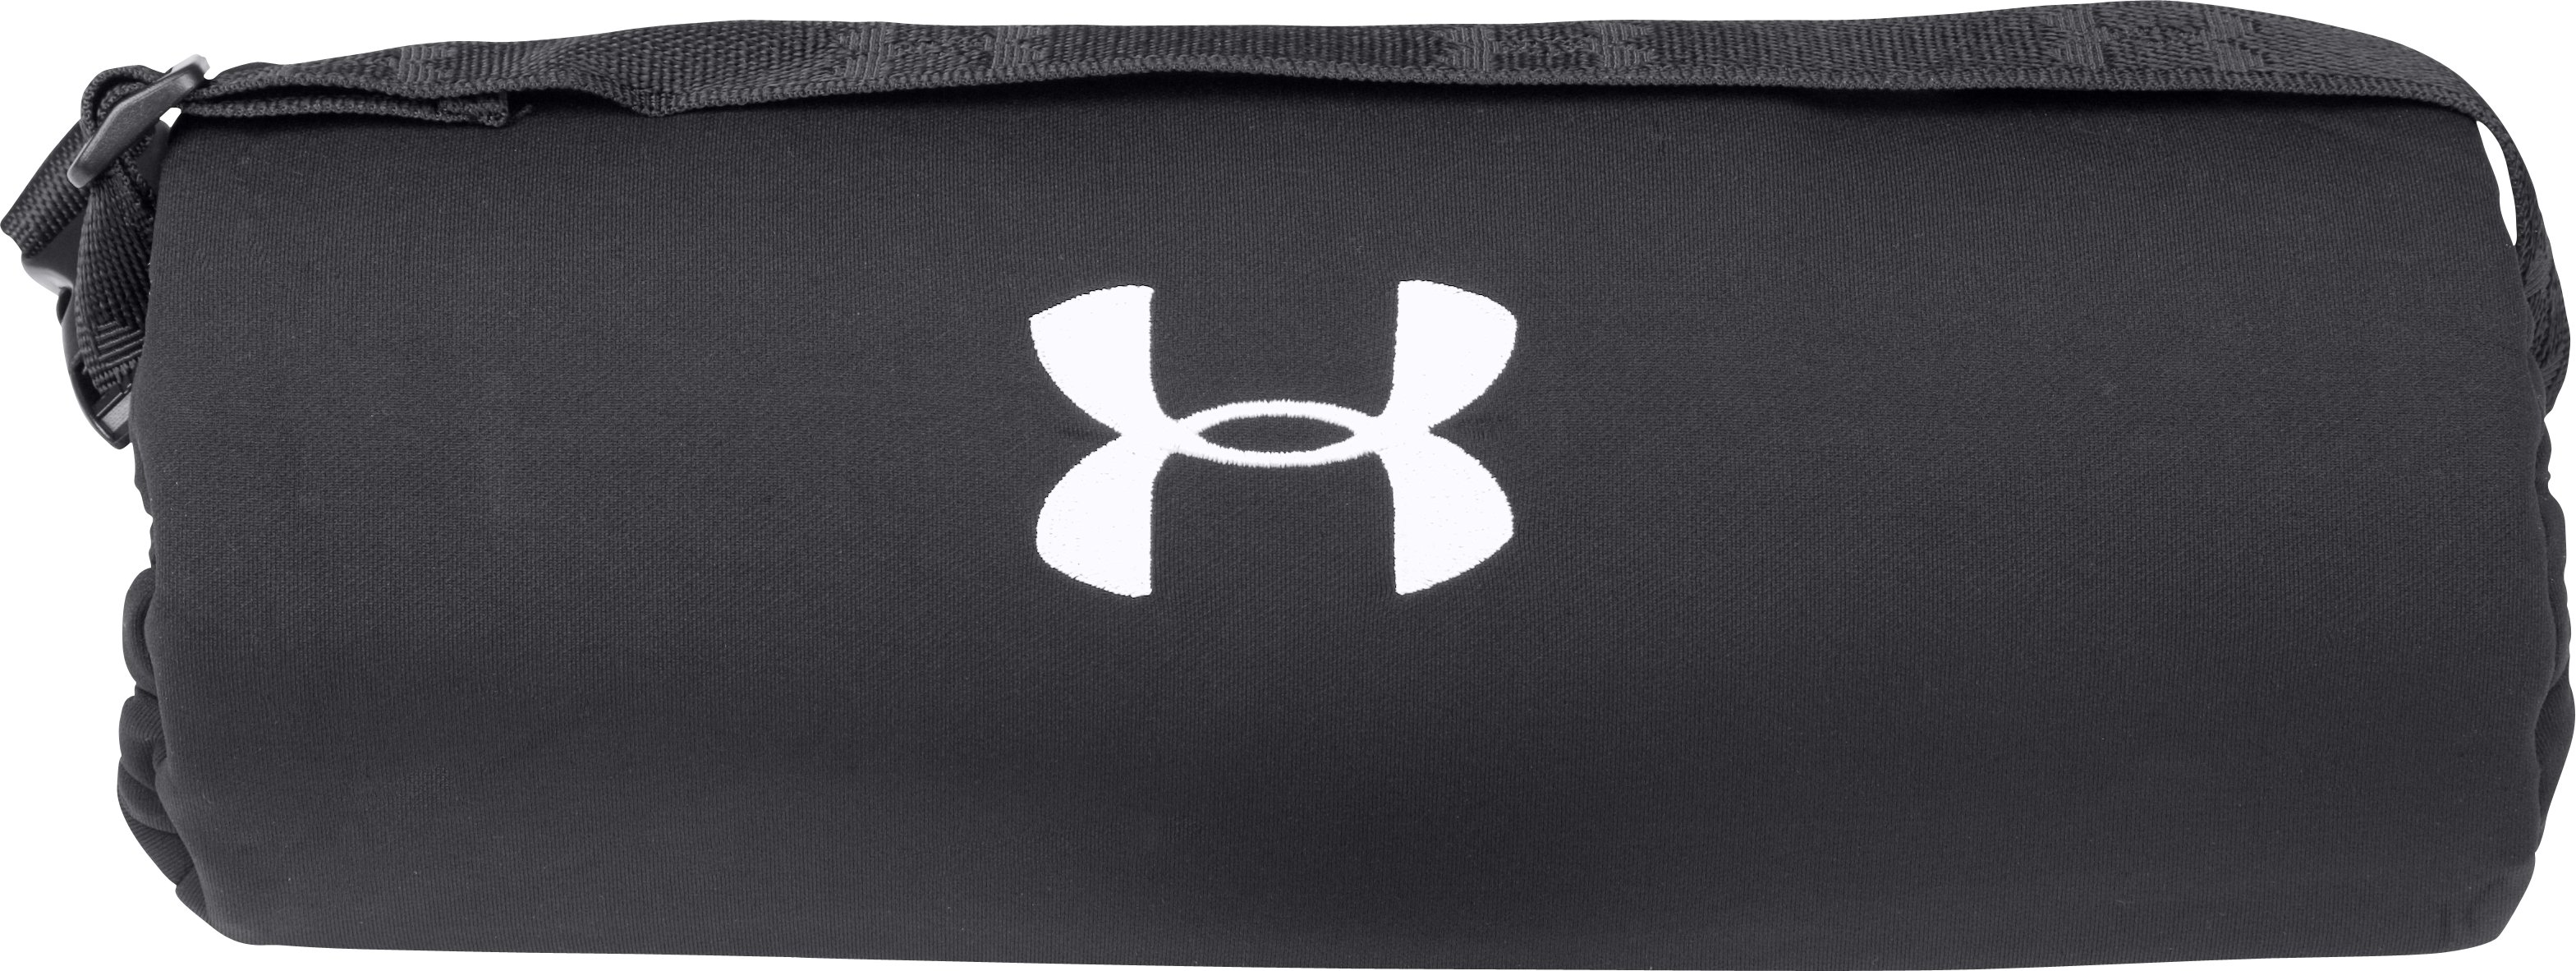 Youth Hand Warmer, Black